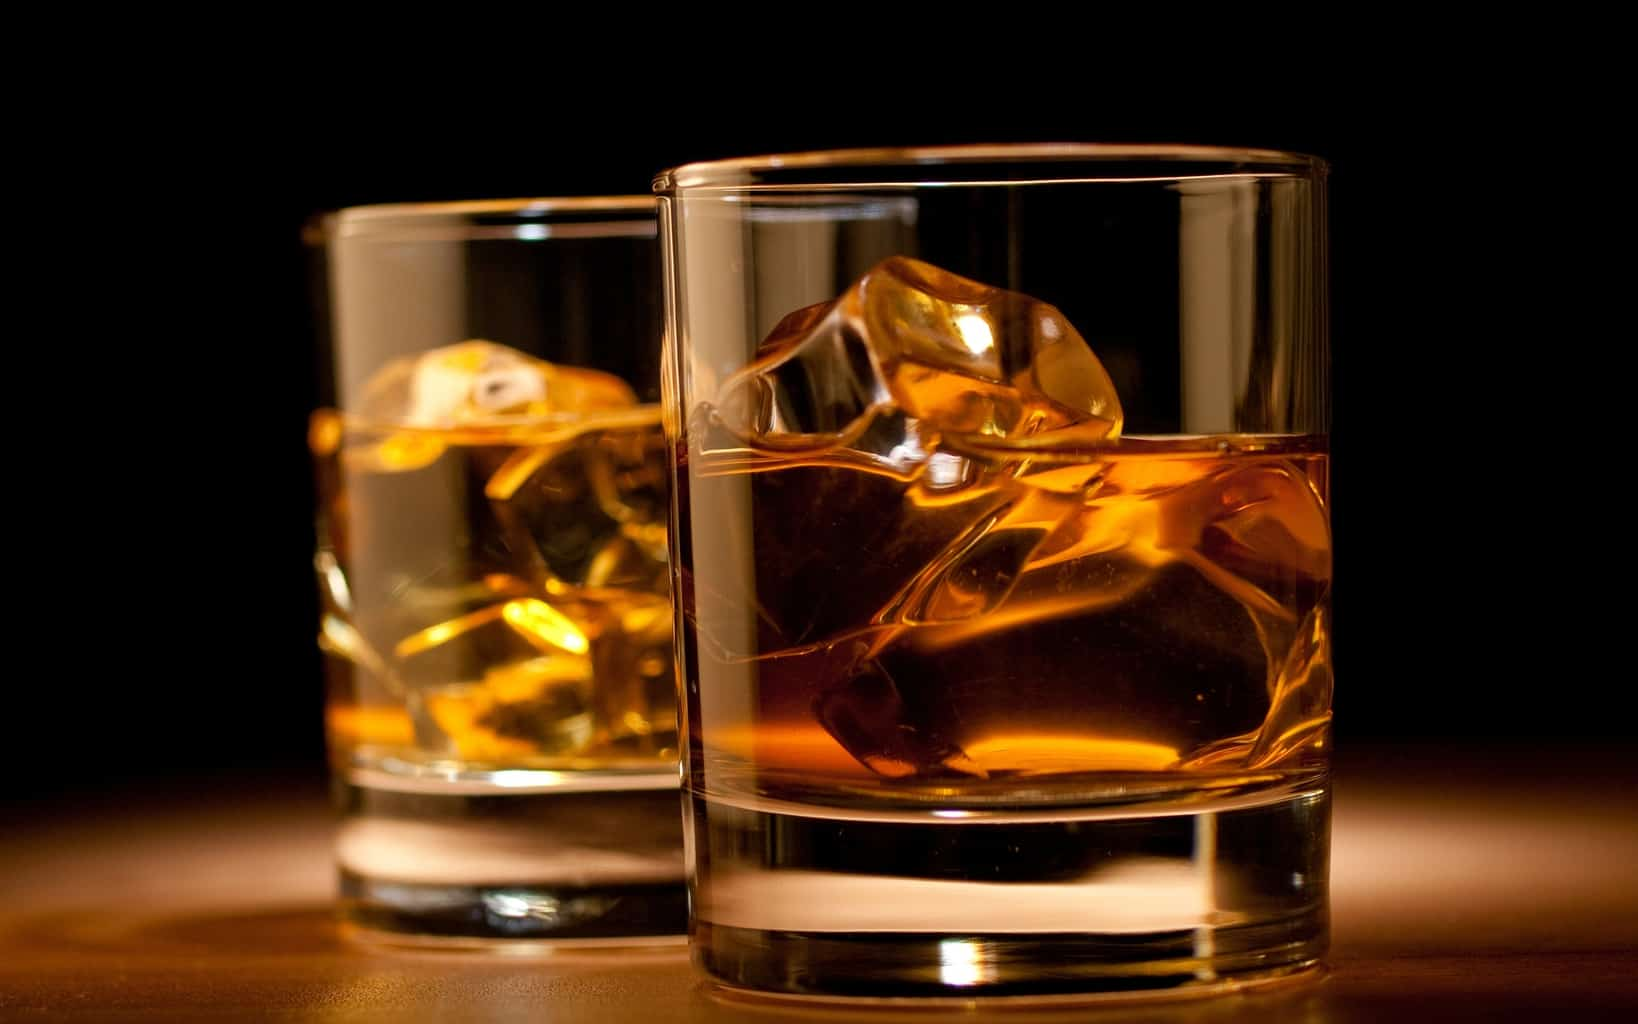 Whisky, Whiskey, Bourbon, Tennessee. Conoce sus diferencias y sabores